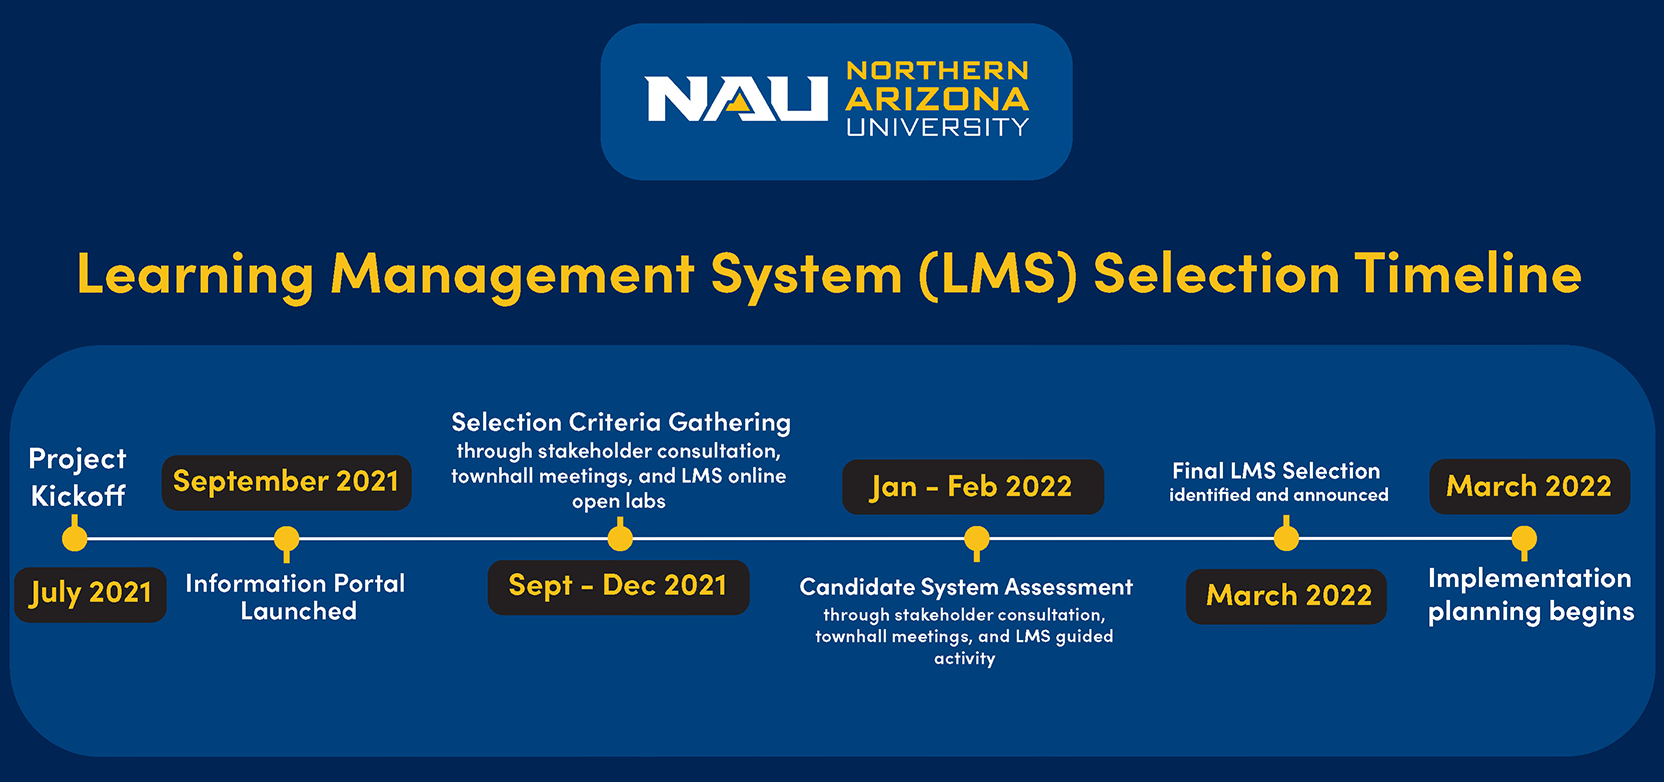 timeline graphic of LMS selection, text is represented in table below.